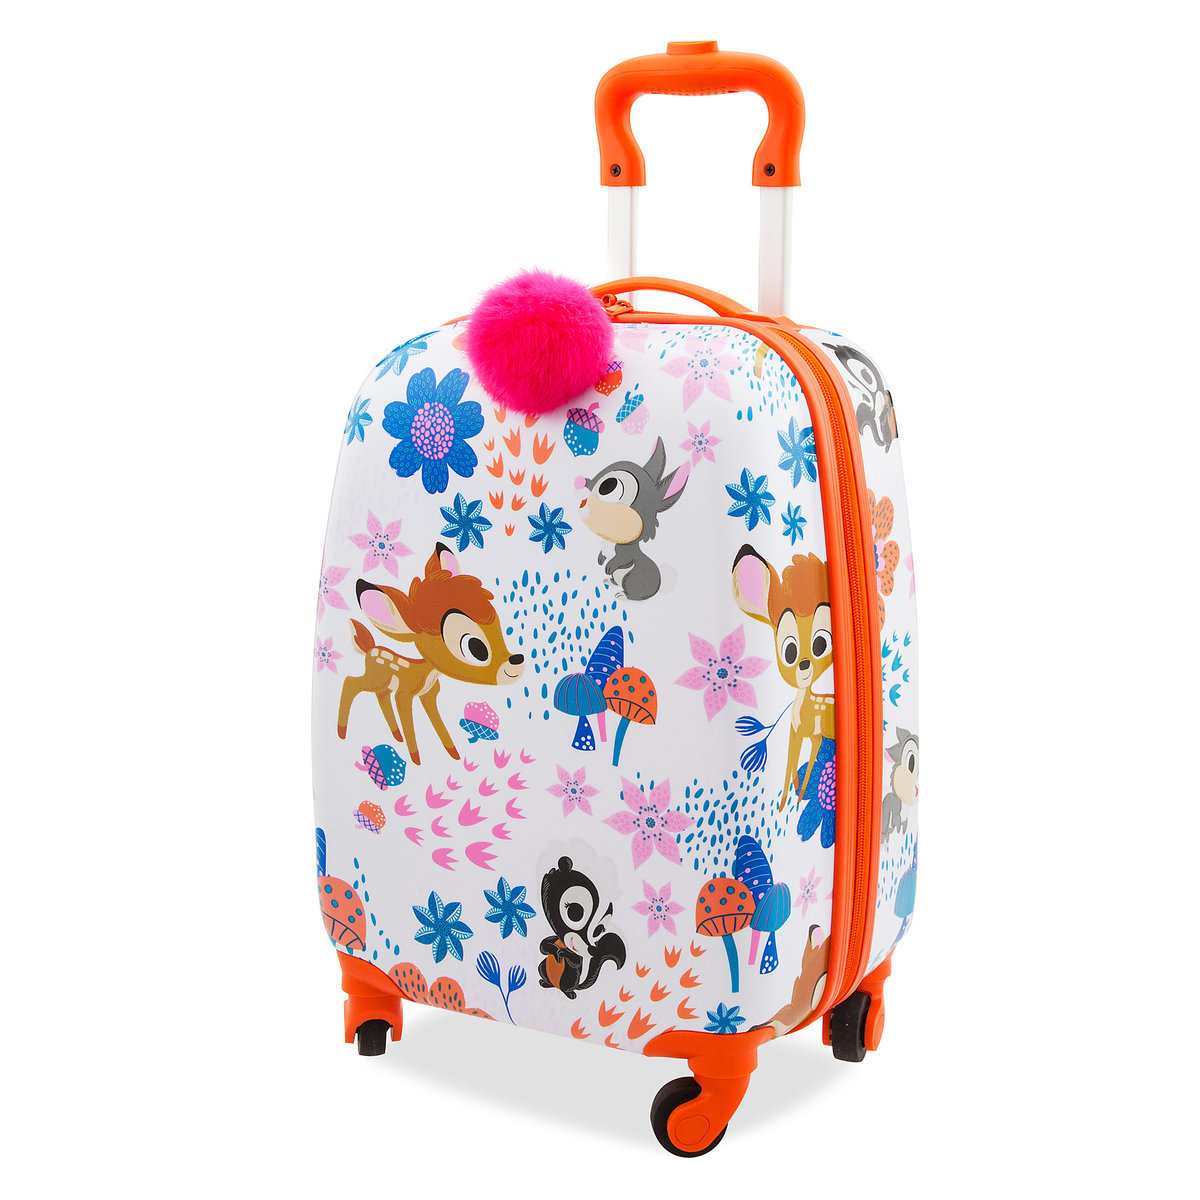 0bd16cad2c4 Product Image of Bambi Rolling Luggage - Disney Furrytale friends   1